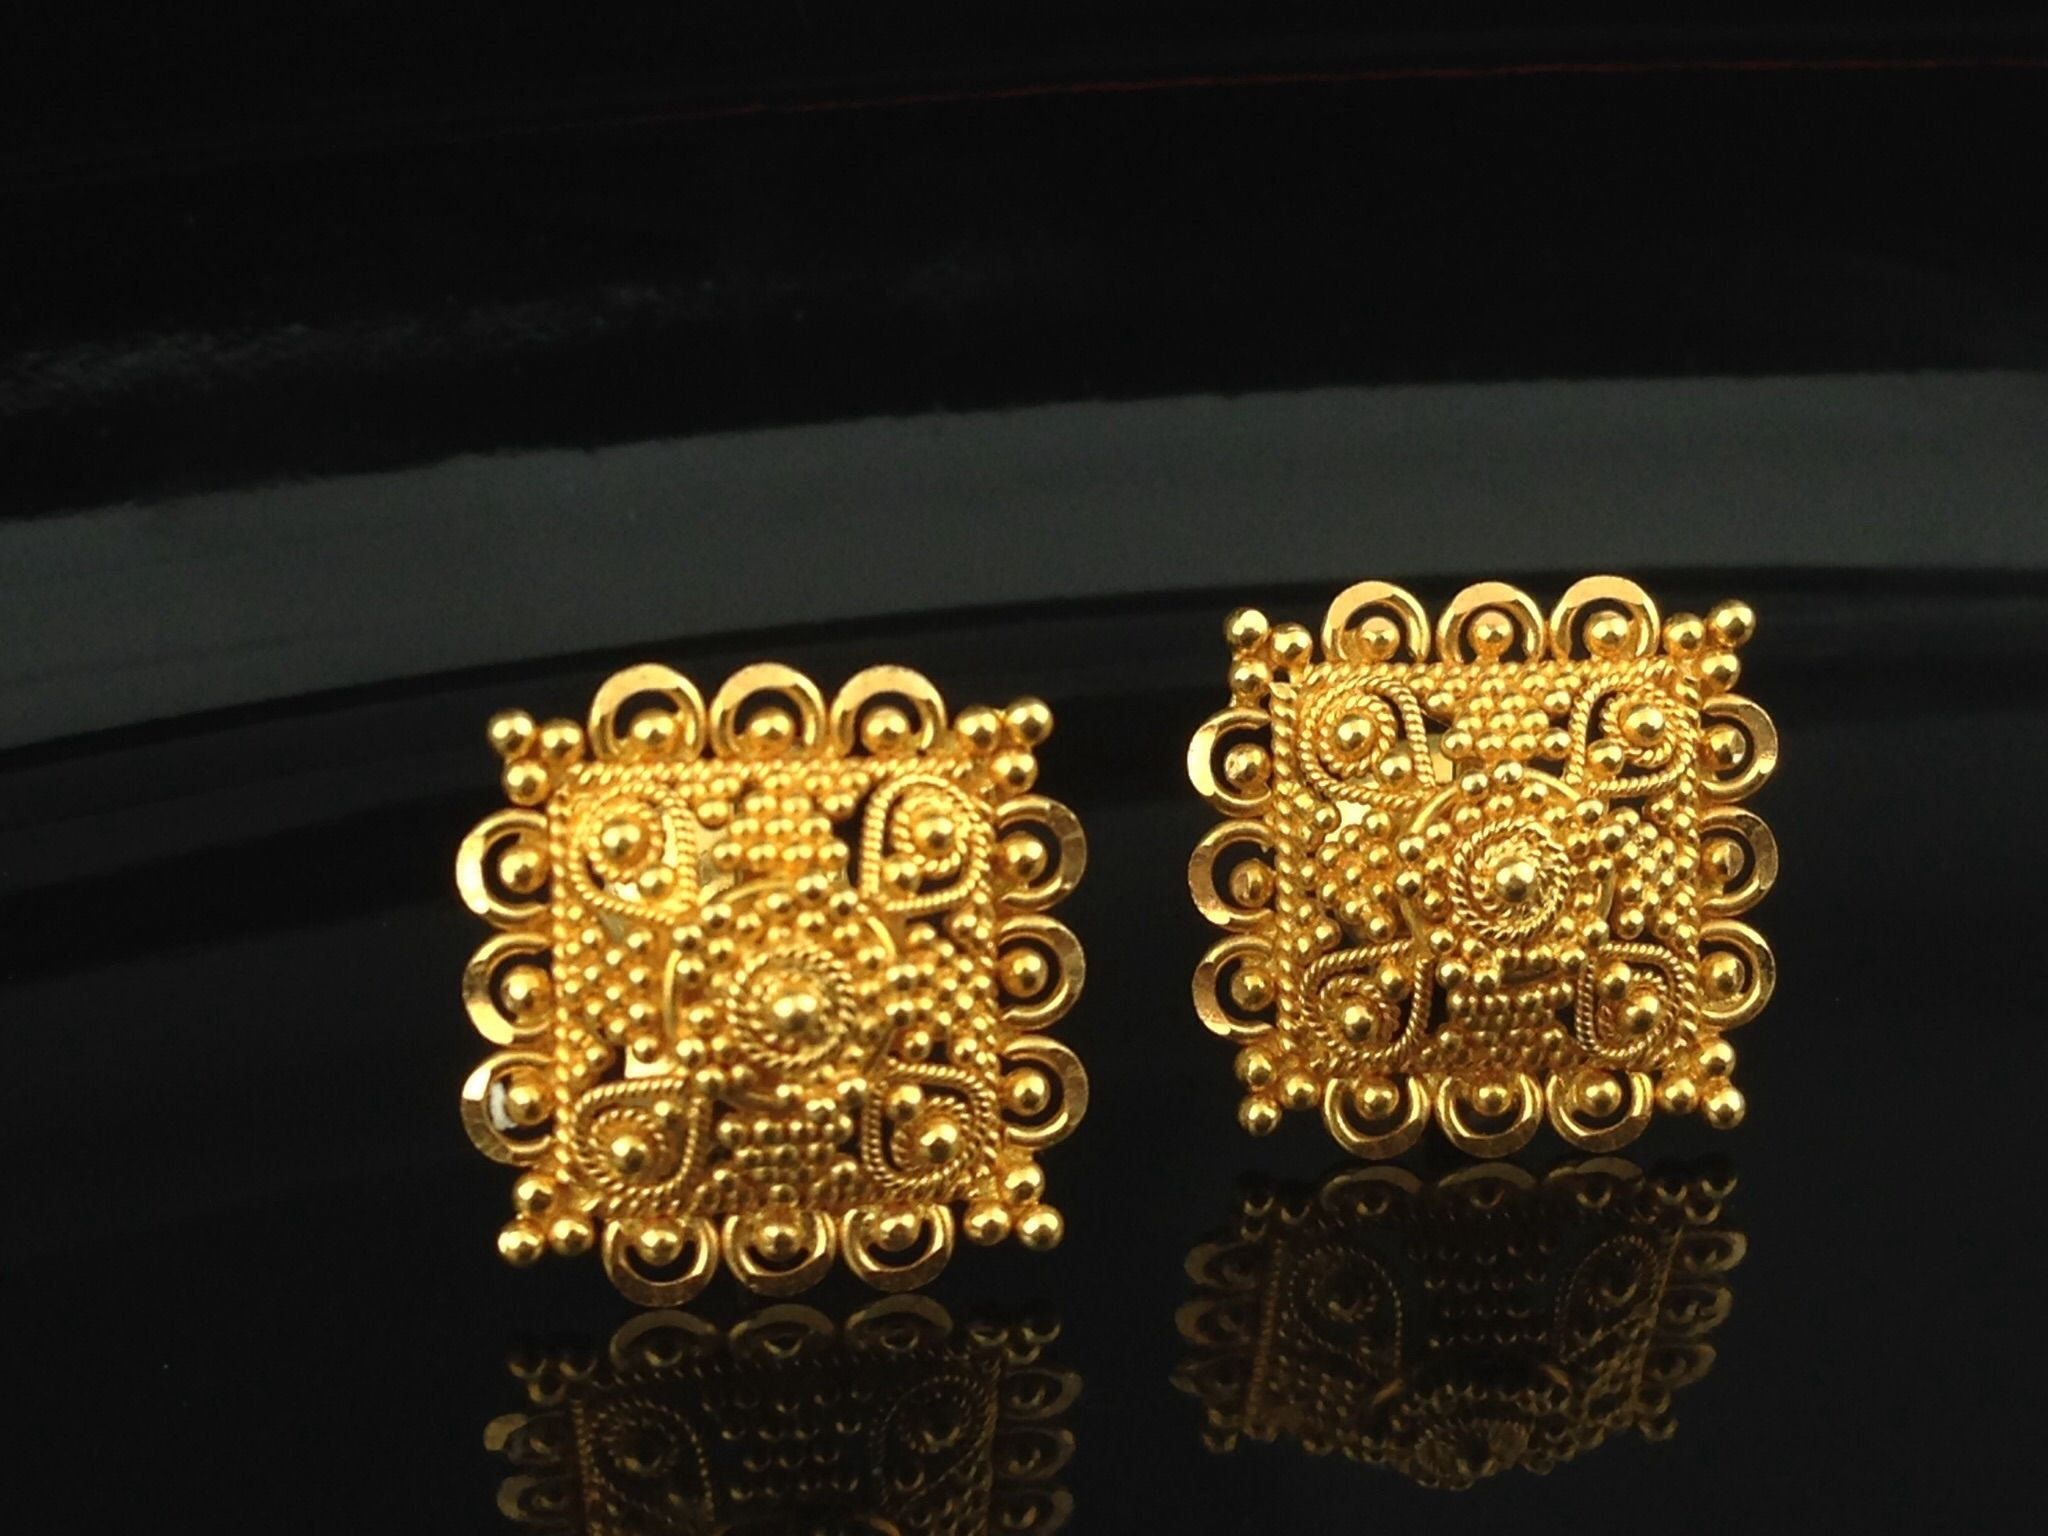 22k Gold Stud Earrings 45 Grams, Indian, Kundan, Islamic, And Gold Jewelry